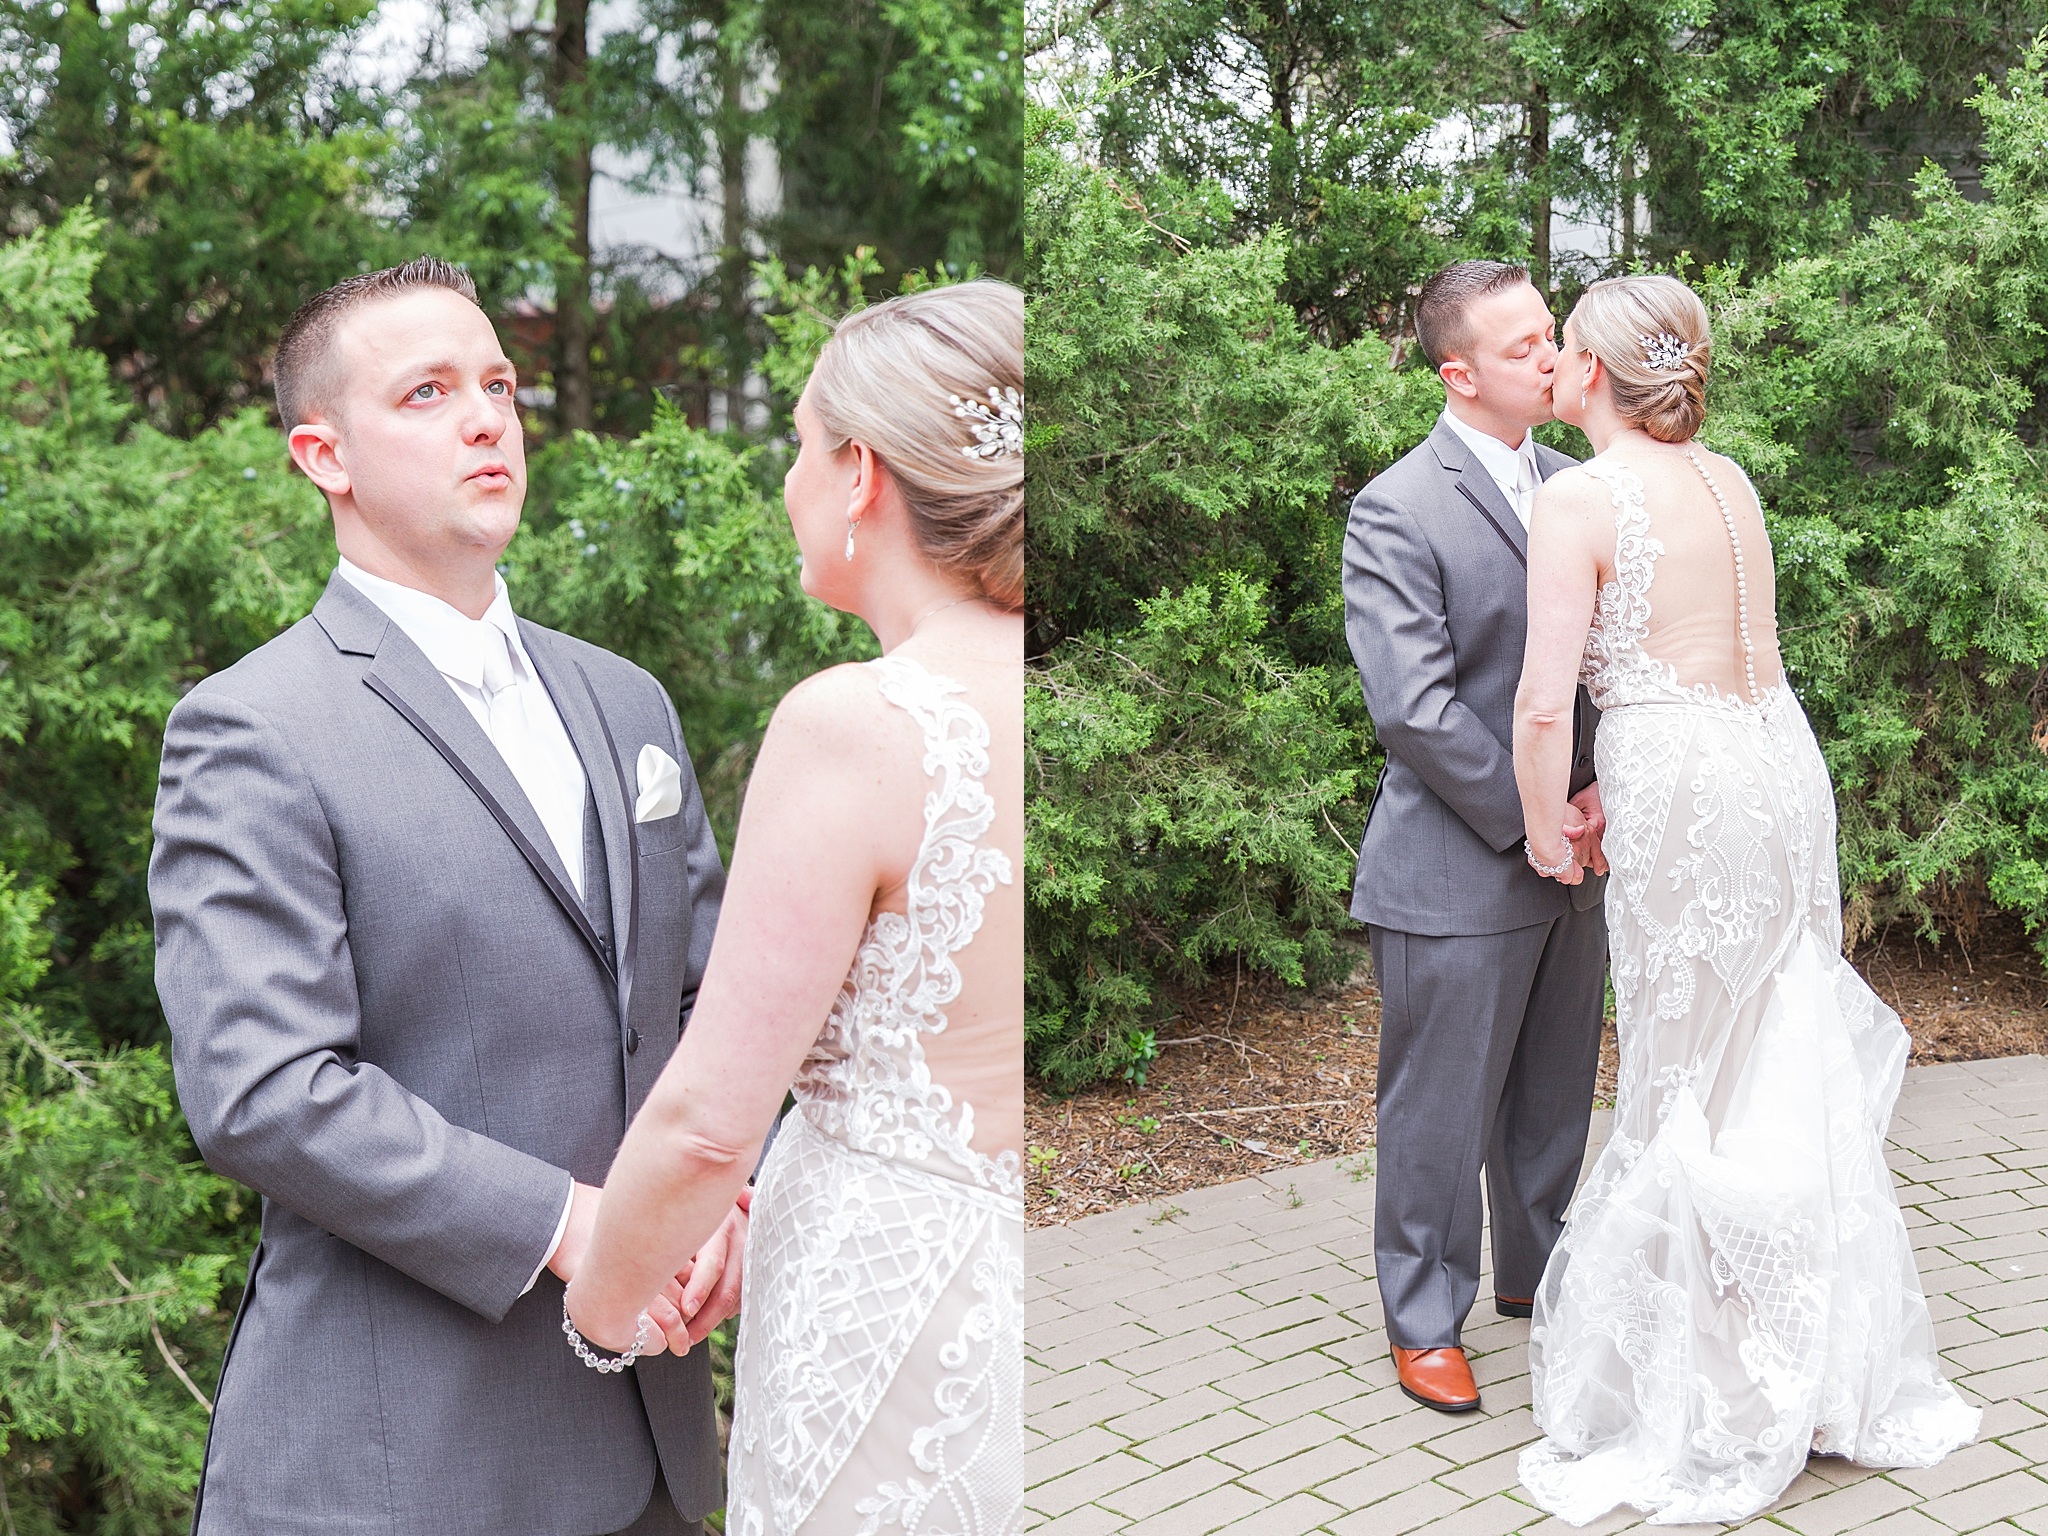 modern-romantic-wedding-photography-at-webers-in-ann-arbor-michigan-by-courtney-carolyn-photography_0024.jpg